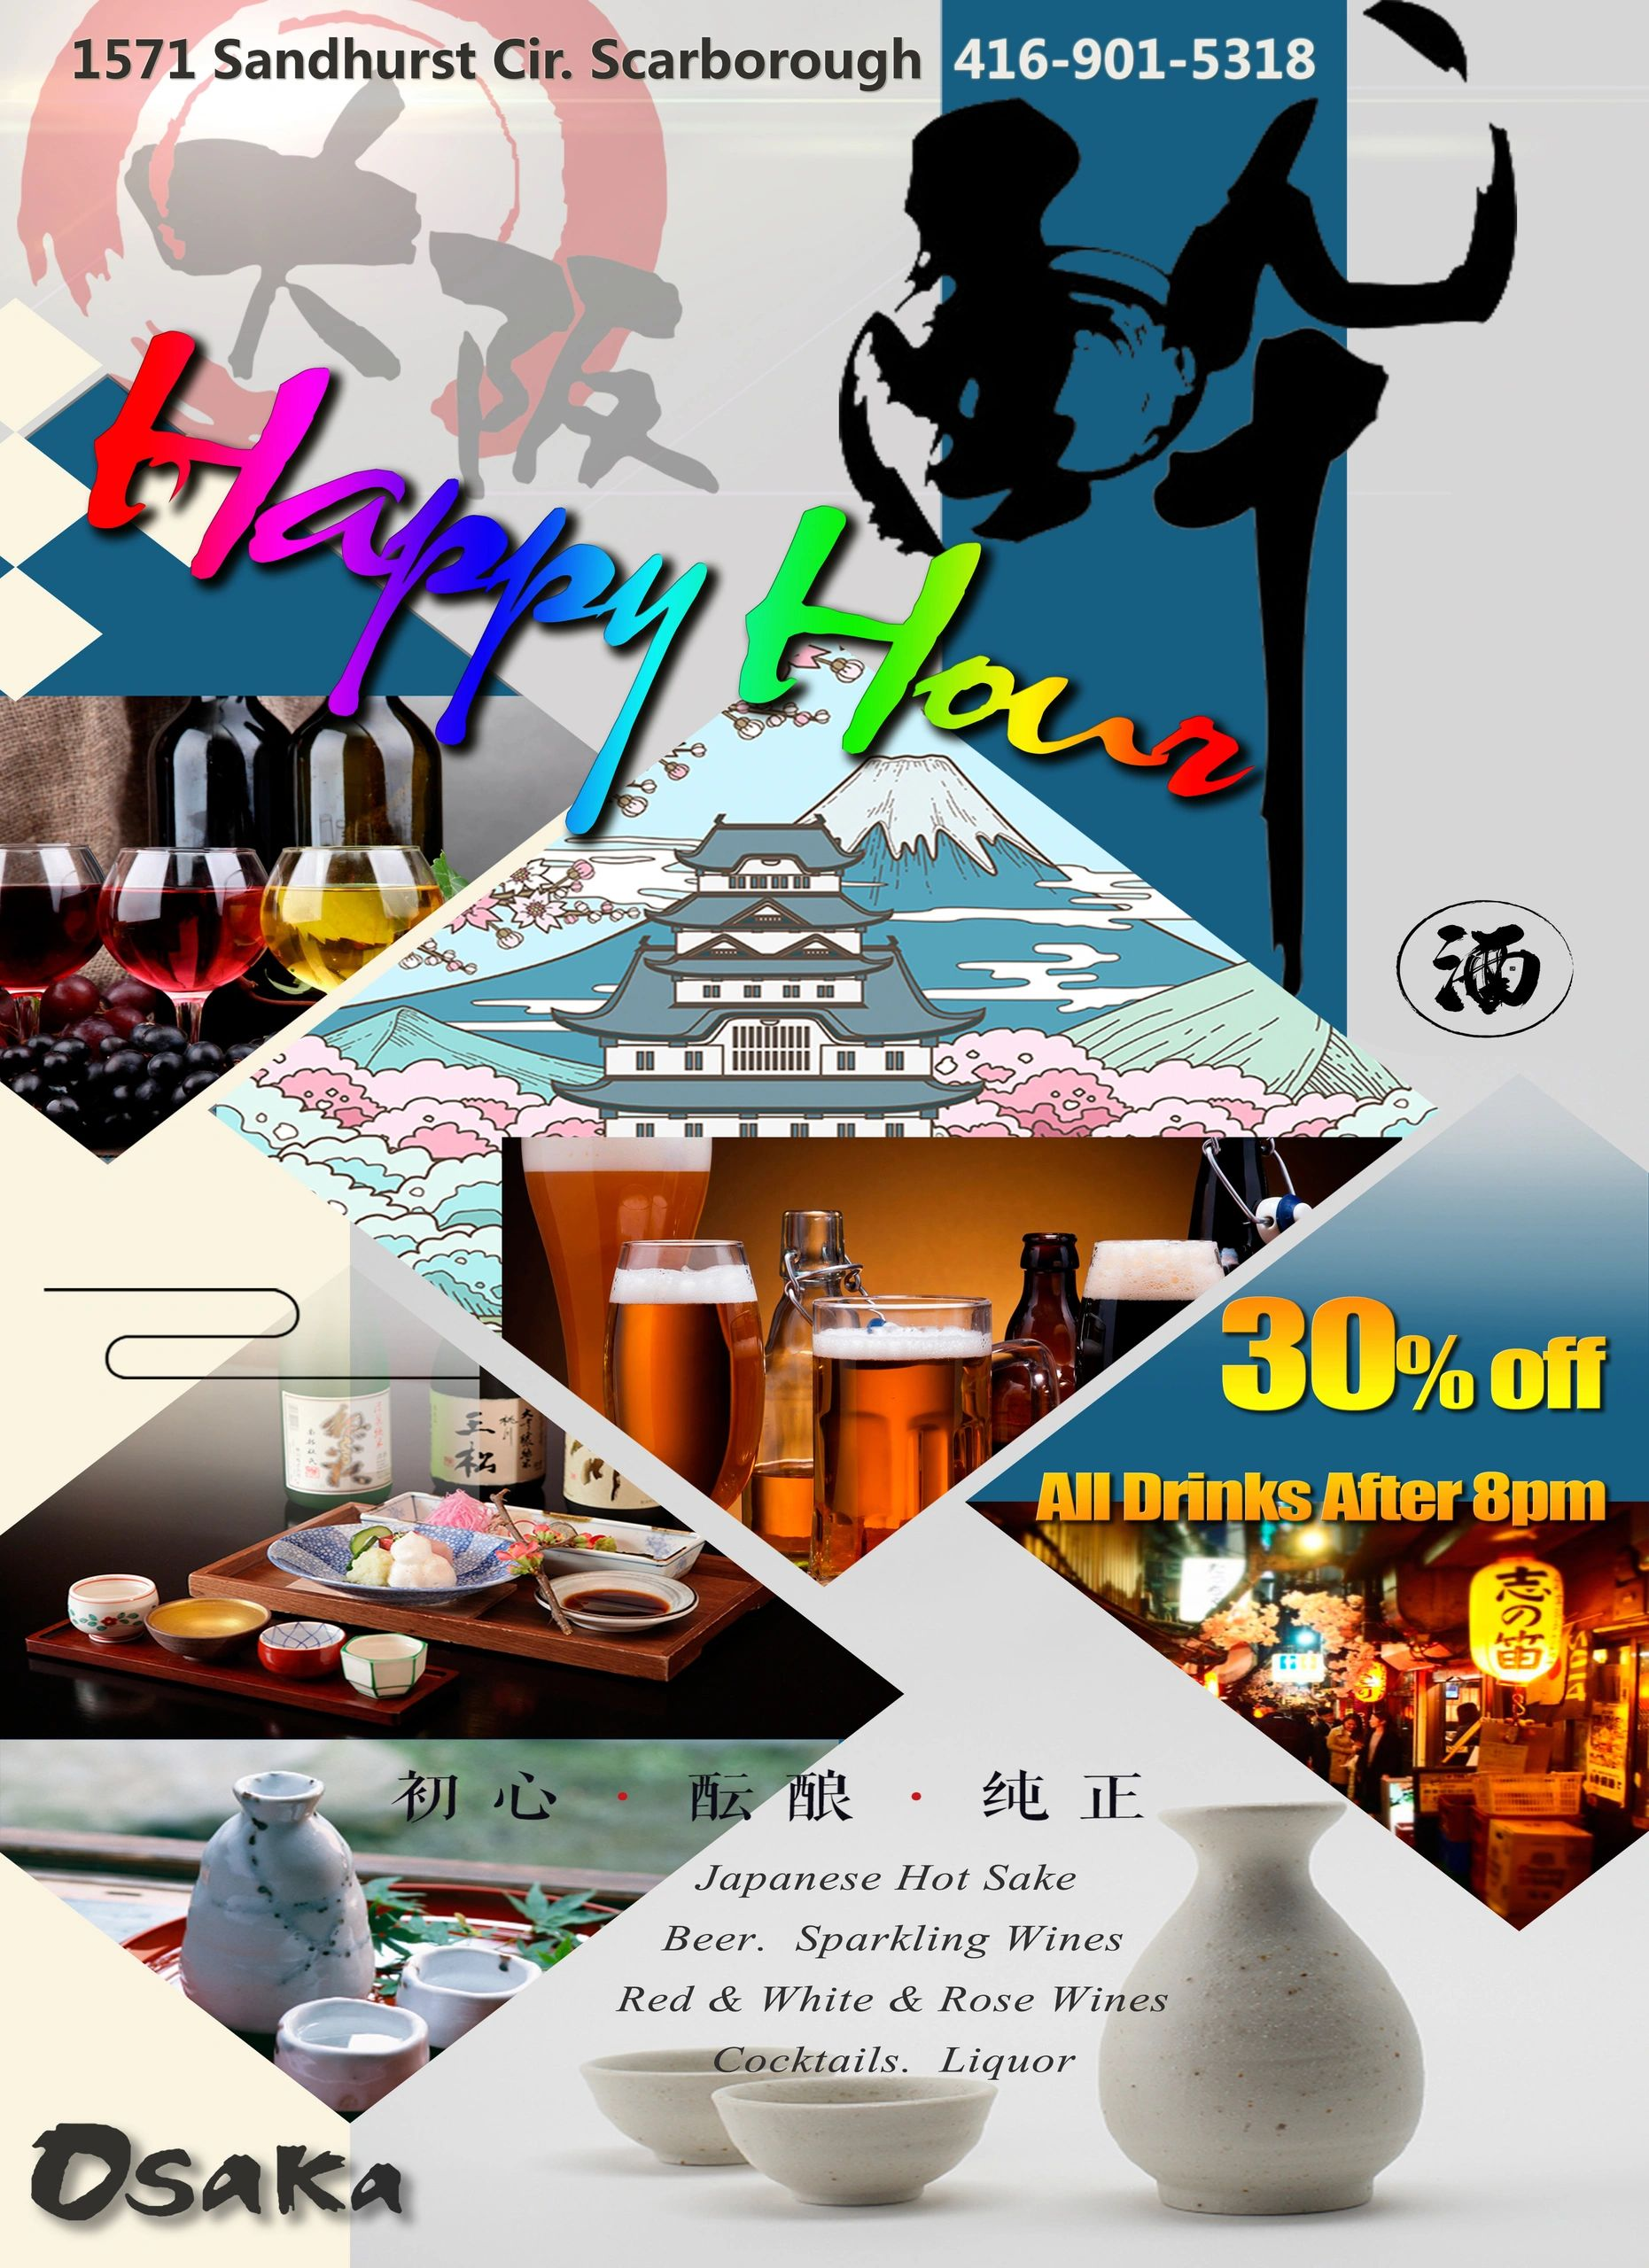 "{""blocks"":[{""key"":""d2q4s"",""text"":""Osaka Happy Hour start 8pm every day. All drinks 30% off。Over 100 Japanese dishes "",""type"":""unstyled"",""depth"":0,""inlineStyleRanges"":[{""offset"":48,""length"":8,""style"":""BOLD""},{""offset"":48,""length"":8,""style"":""UNDERLINE""}],""entityRanges"":[],""data"":{}},{""key"":""au0o6"",""text"":""大阪欢乐时光,晚8点后所有酒水7折优惠。各色刺身寿司精美小食,欢迎光临。"",""type"":""unstyled"",""depth"":0,""inlineStyleRanges"":[],""entityRanges"":[],""data"":{}}],""entityMap"":{}}"